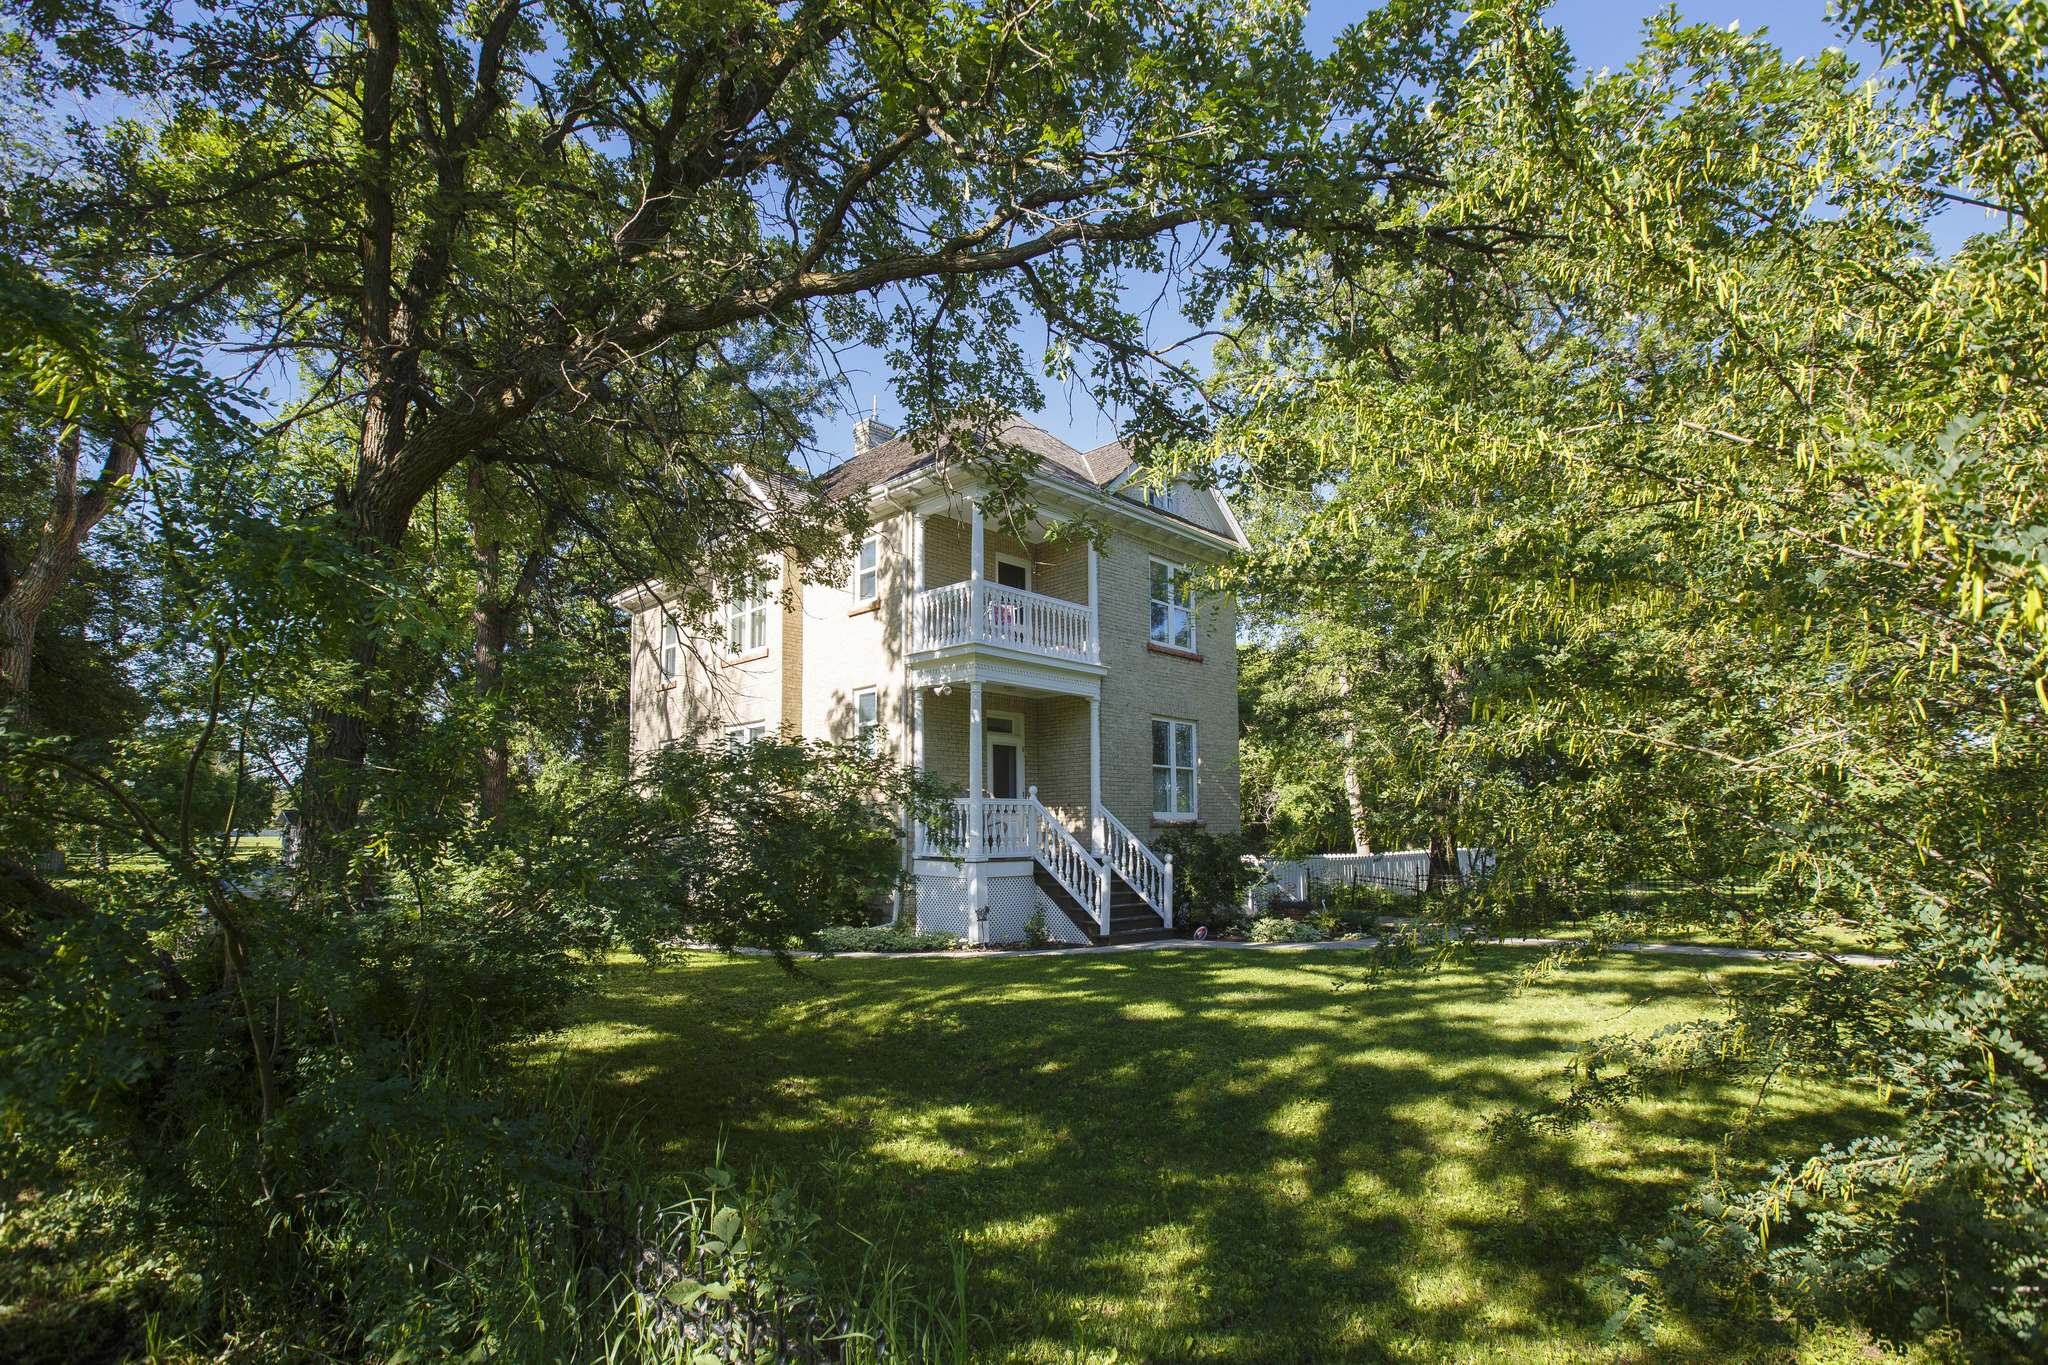 Caron Park in Charleswood is on the Assiniboine River and includes historic Caron House. (Mike Deal / Winnipeg Free Press)